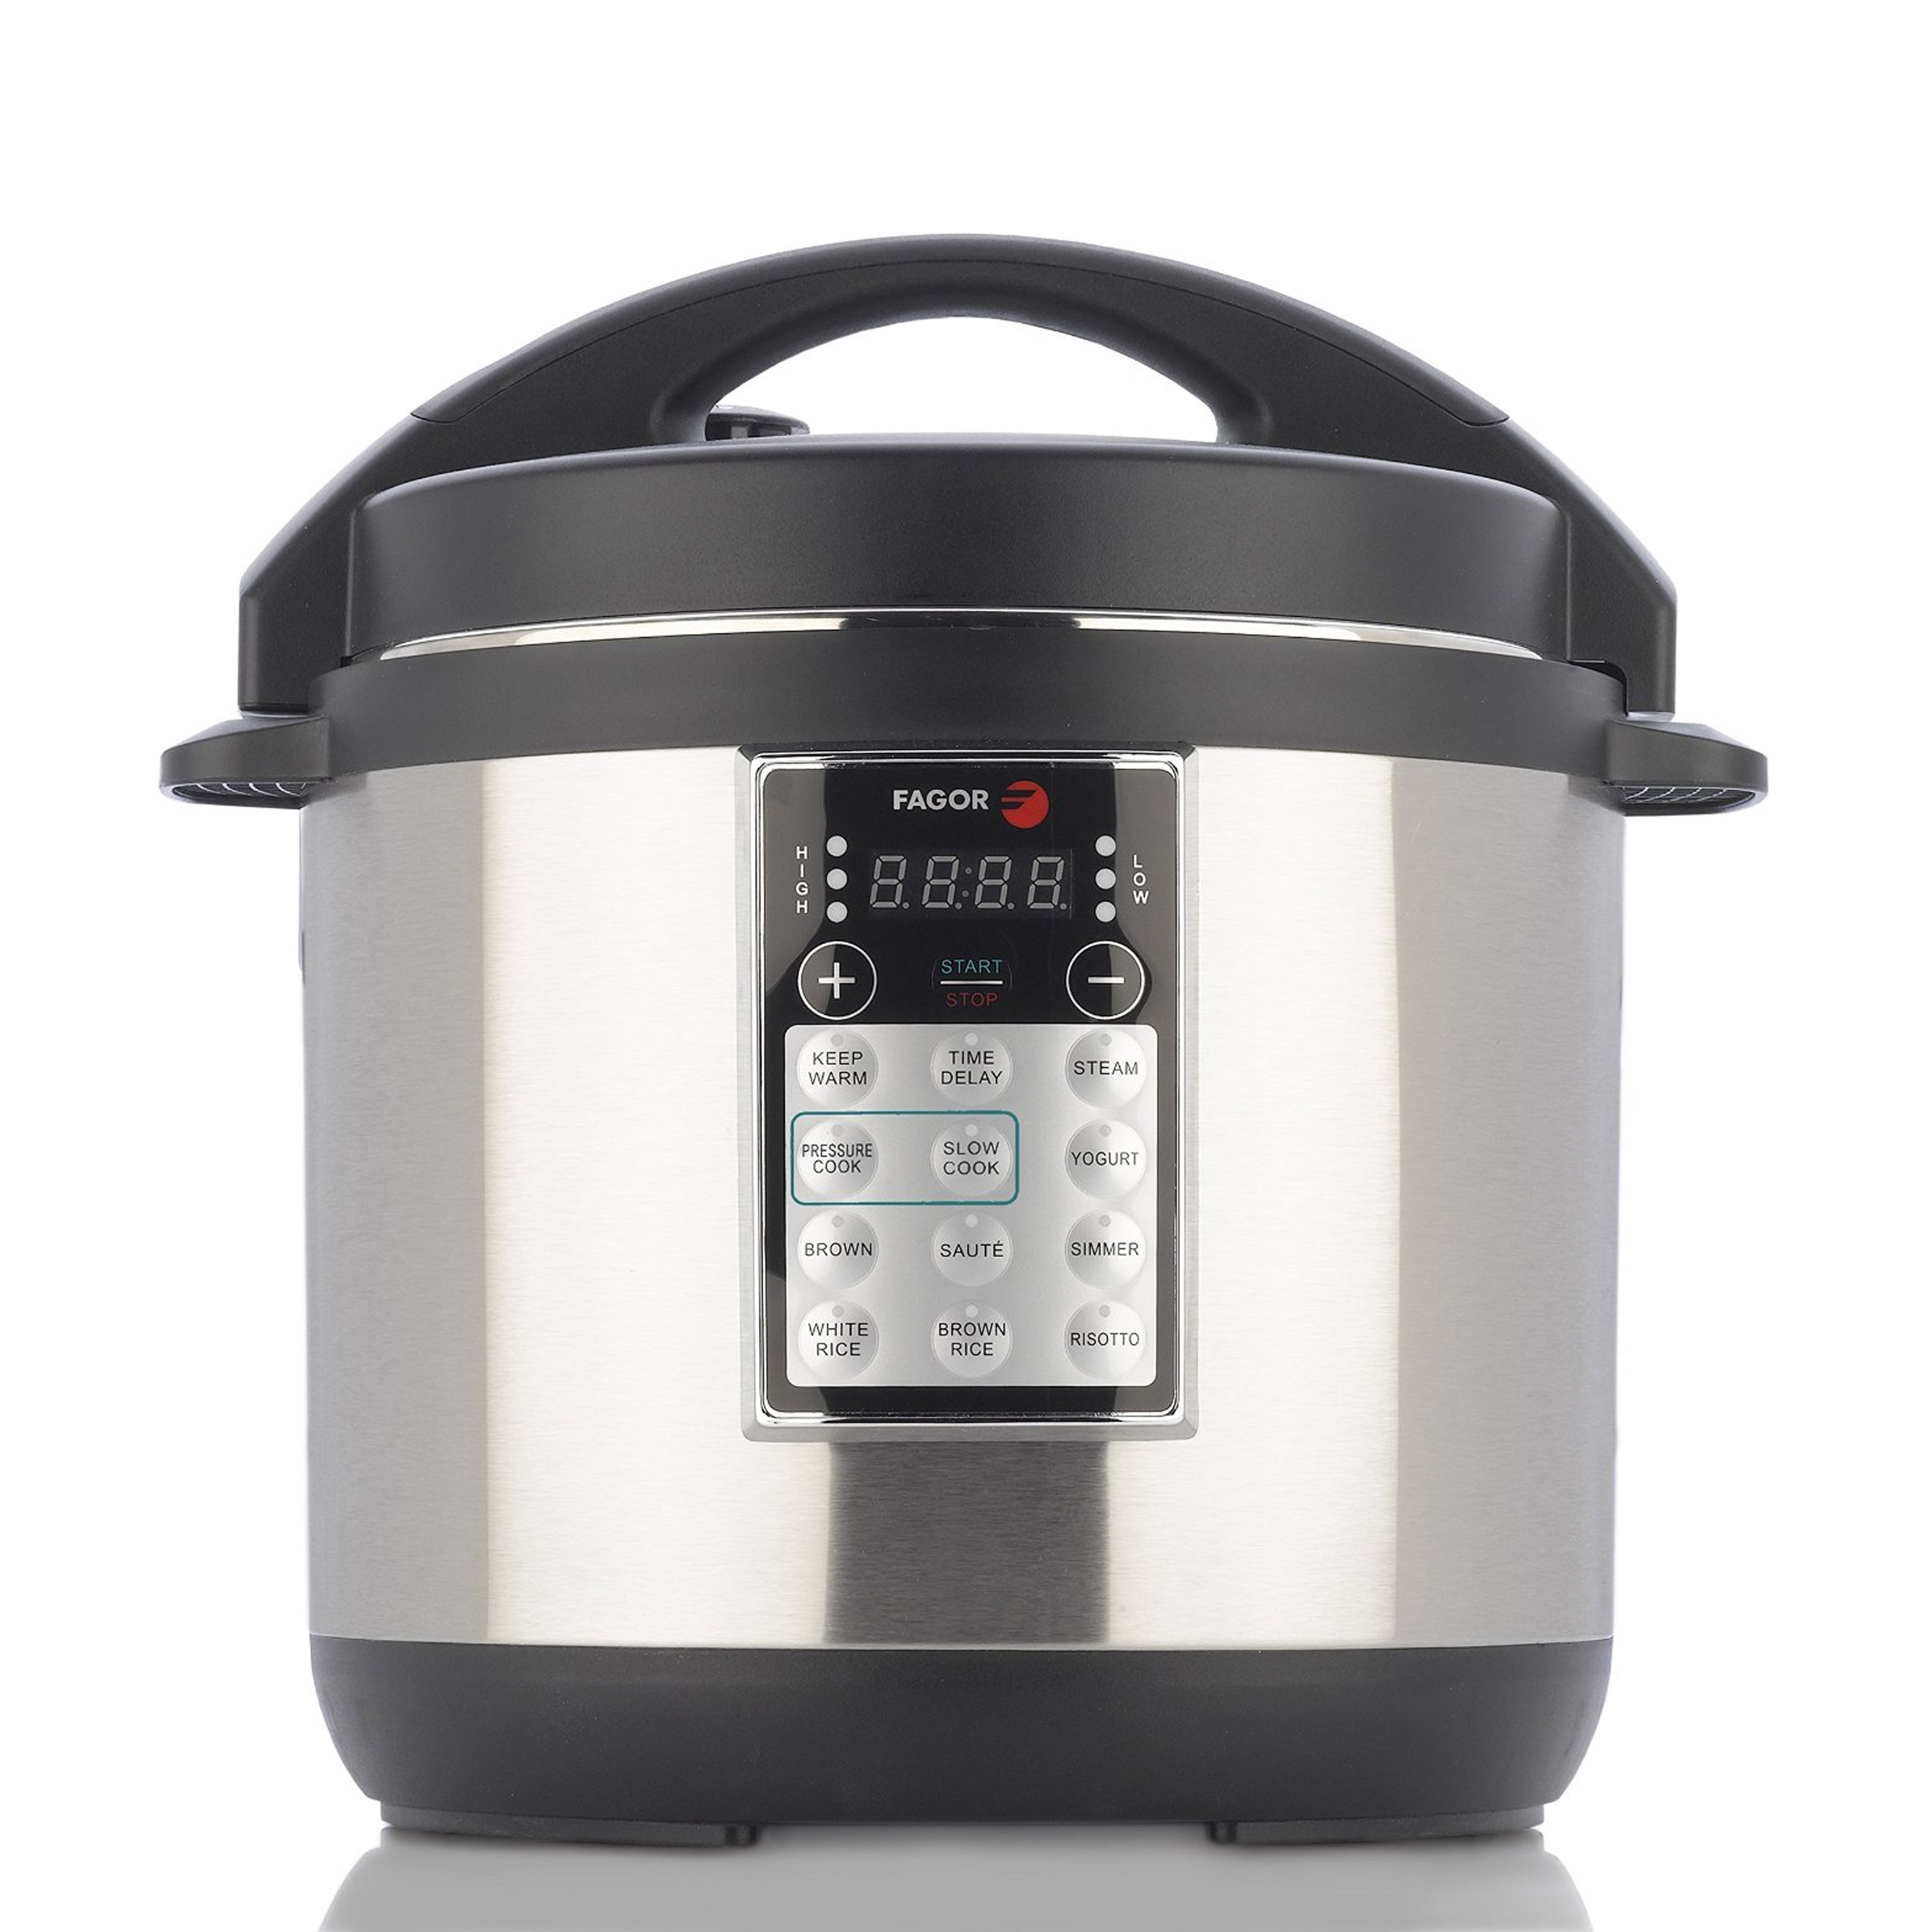 Fagor Lux Multi-Cooker Review, Price and Features - Pros and Cons of Fagor  Lux Multi-Cooker